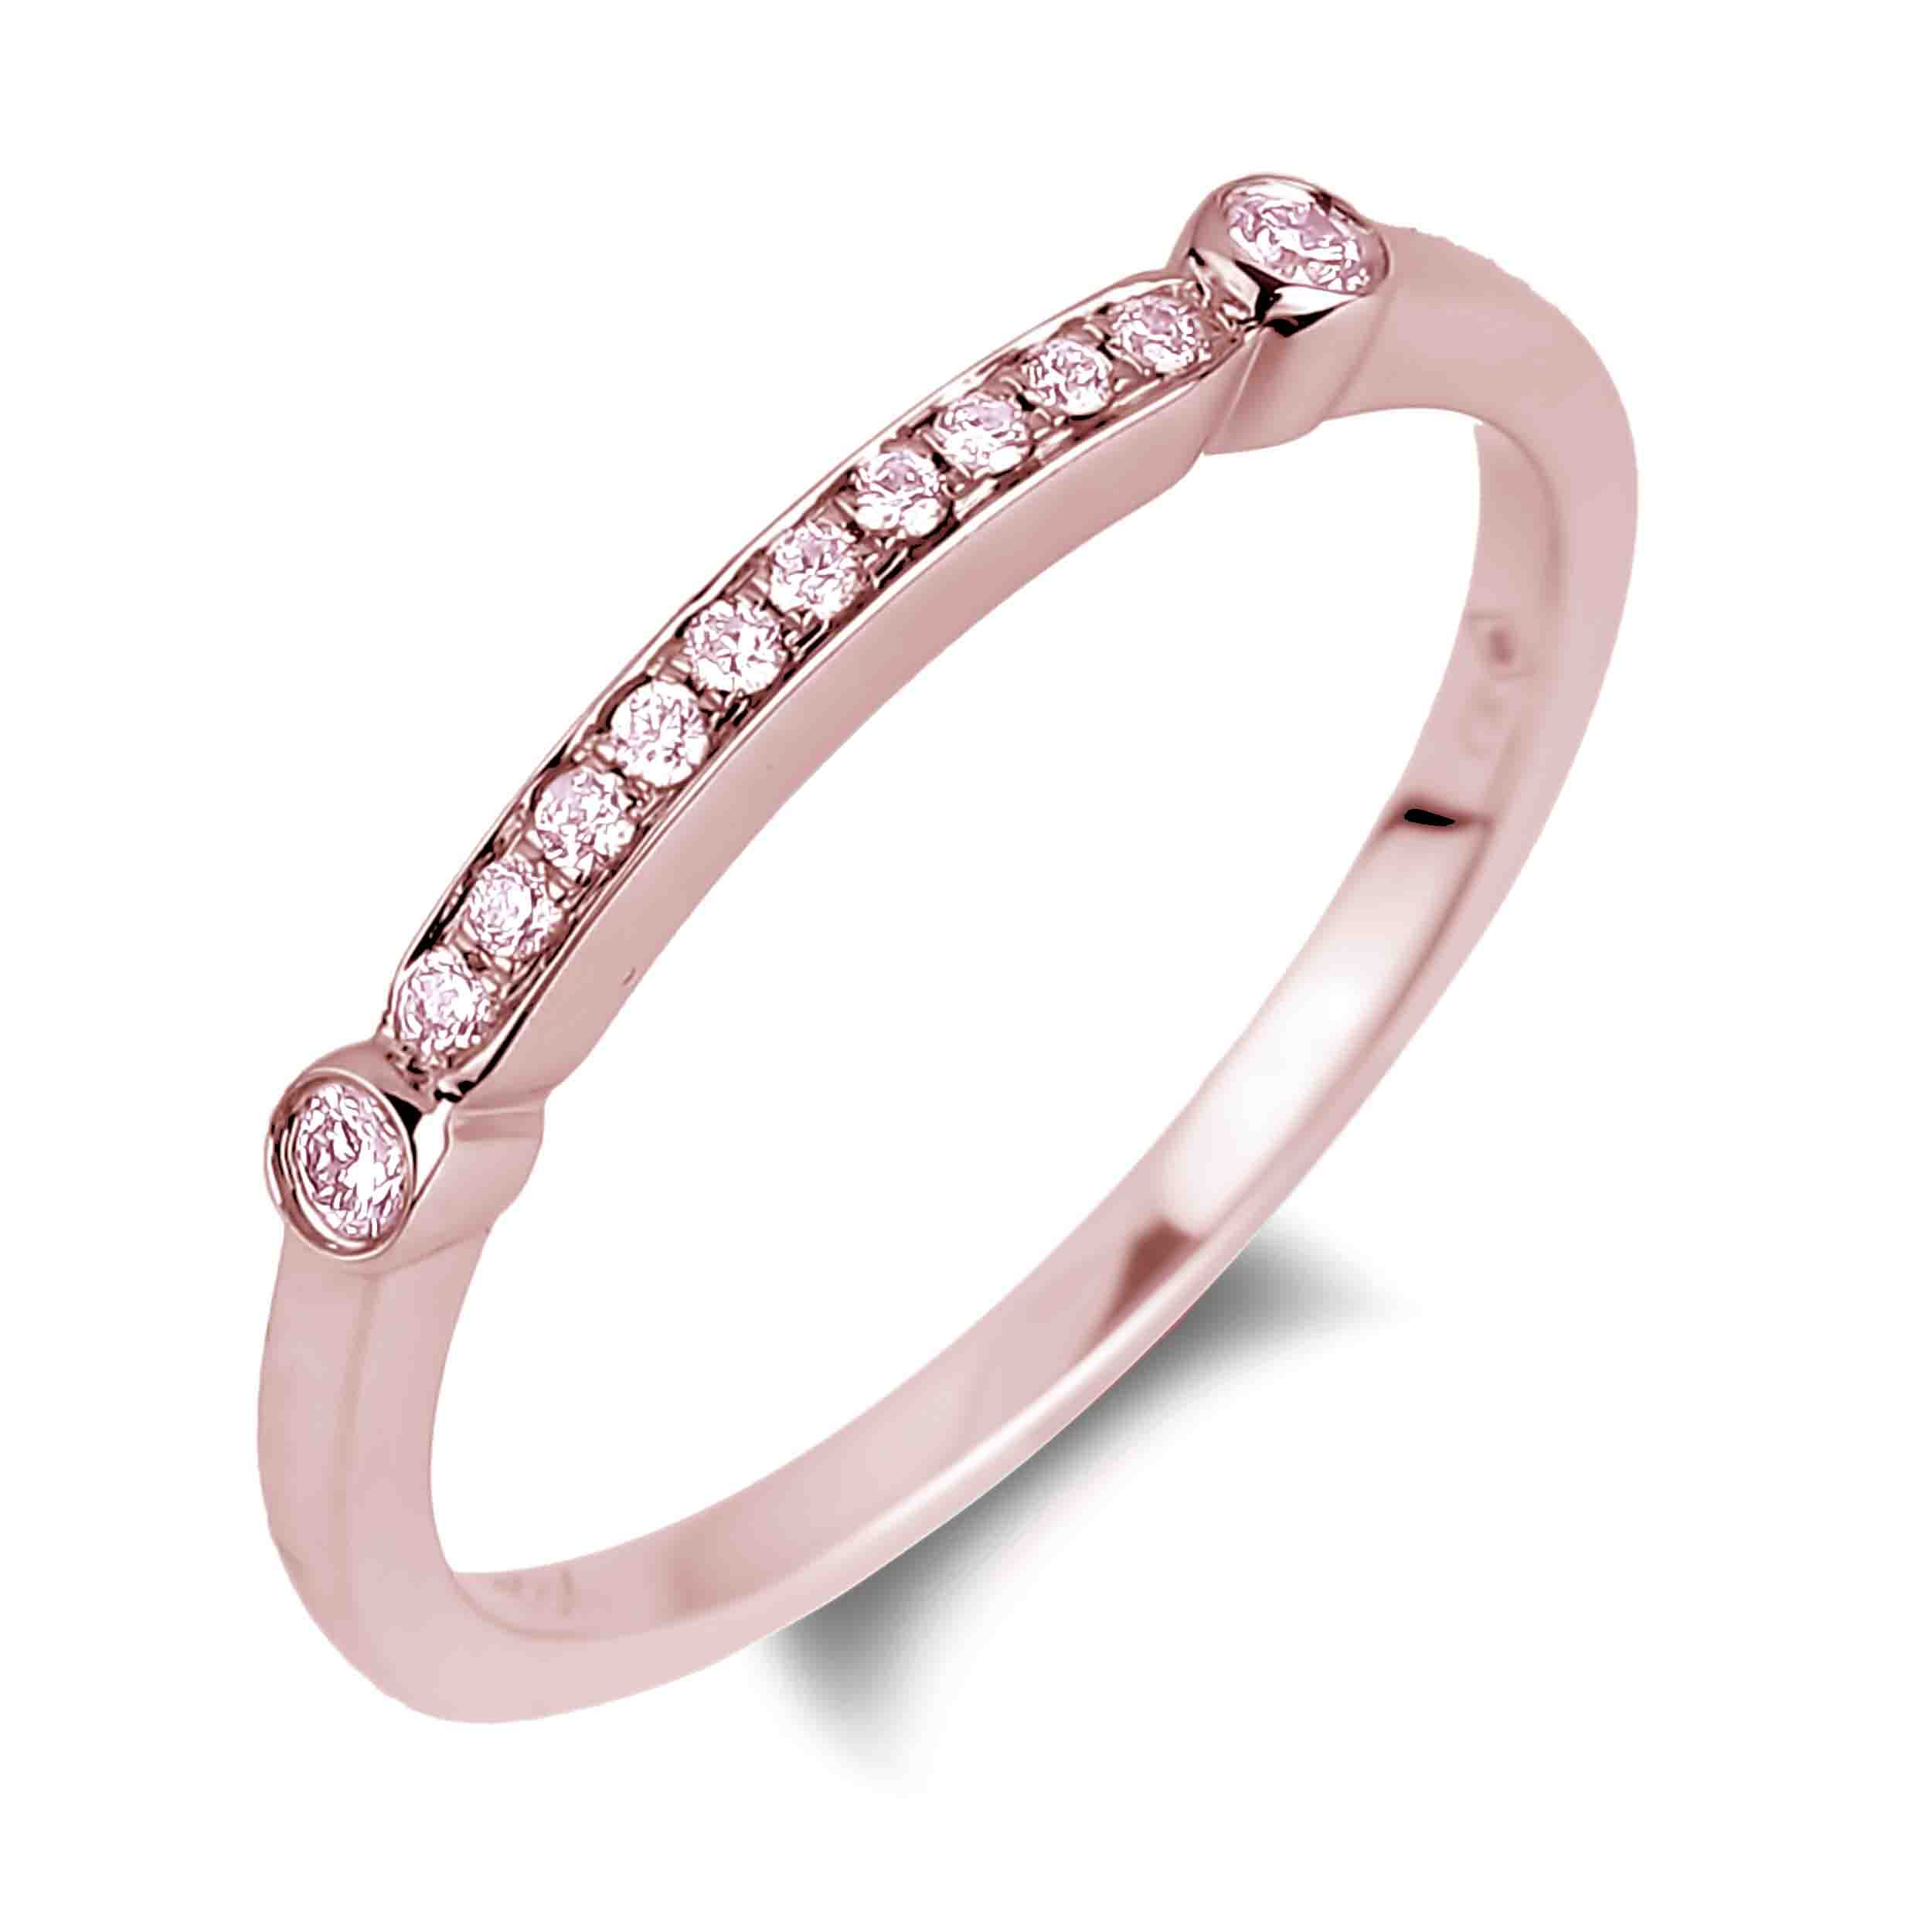 Fancy Pink Diamond Ladies Matching Wedding Band In Most Up To Date Certified Diamond Anniversary Bands In Rose Gold (View 7 of 25)